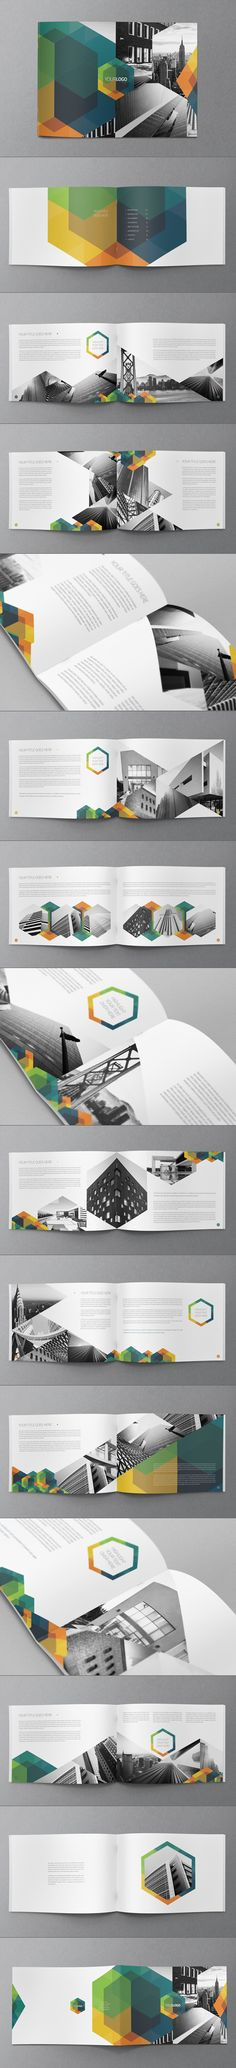 Business Brochure Design Inspiration